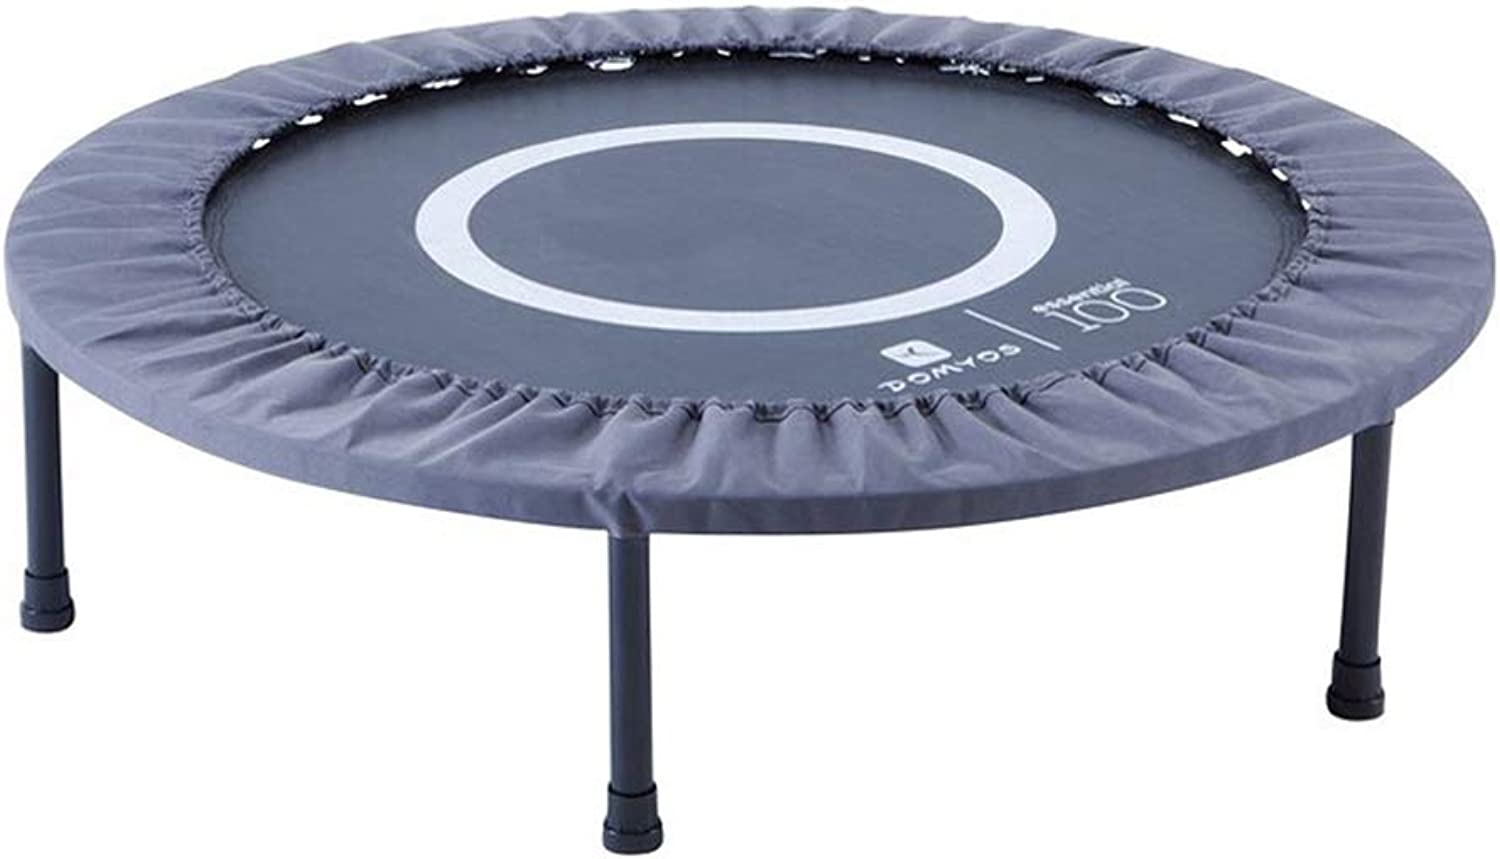 Trampolines Fitness Max Load 80lbs, Portable Cardio Workout Fitness